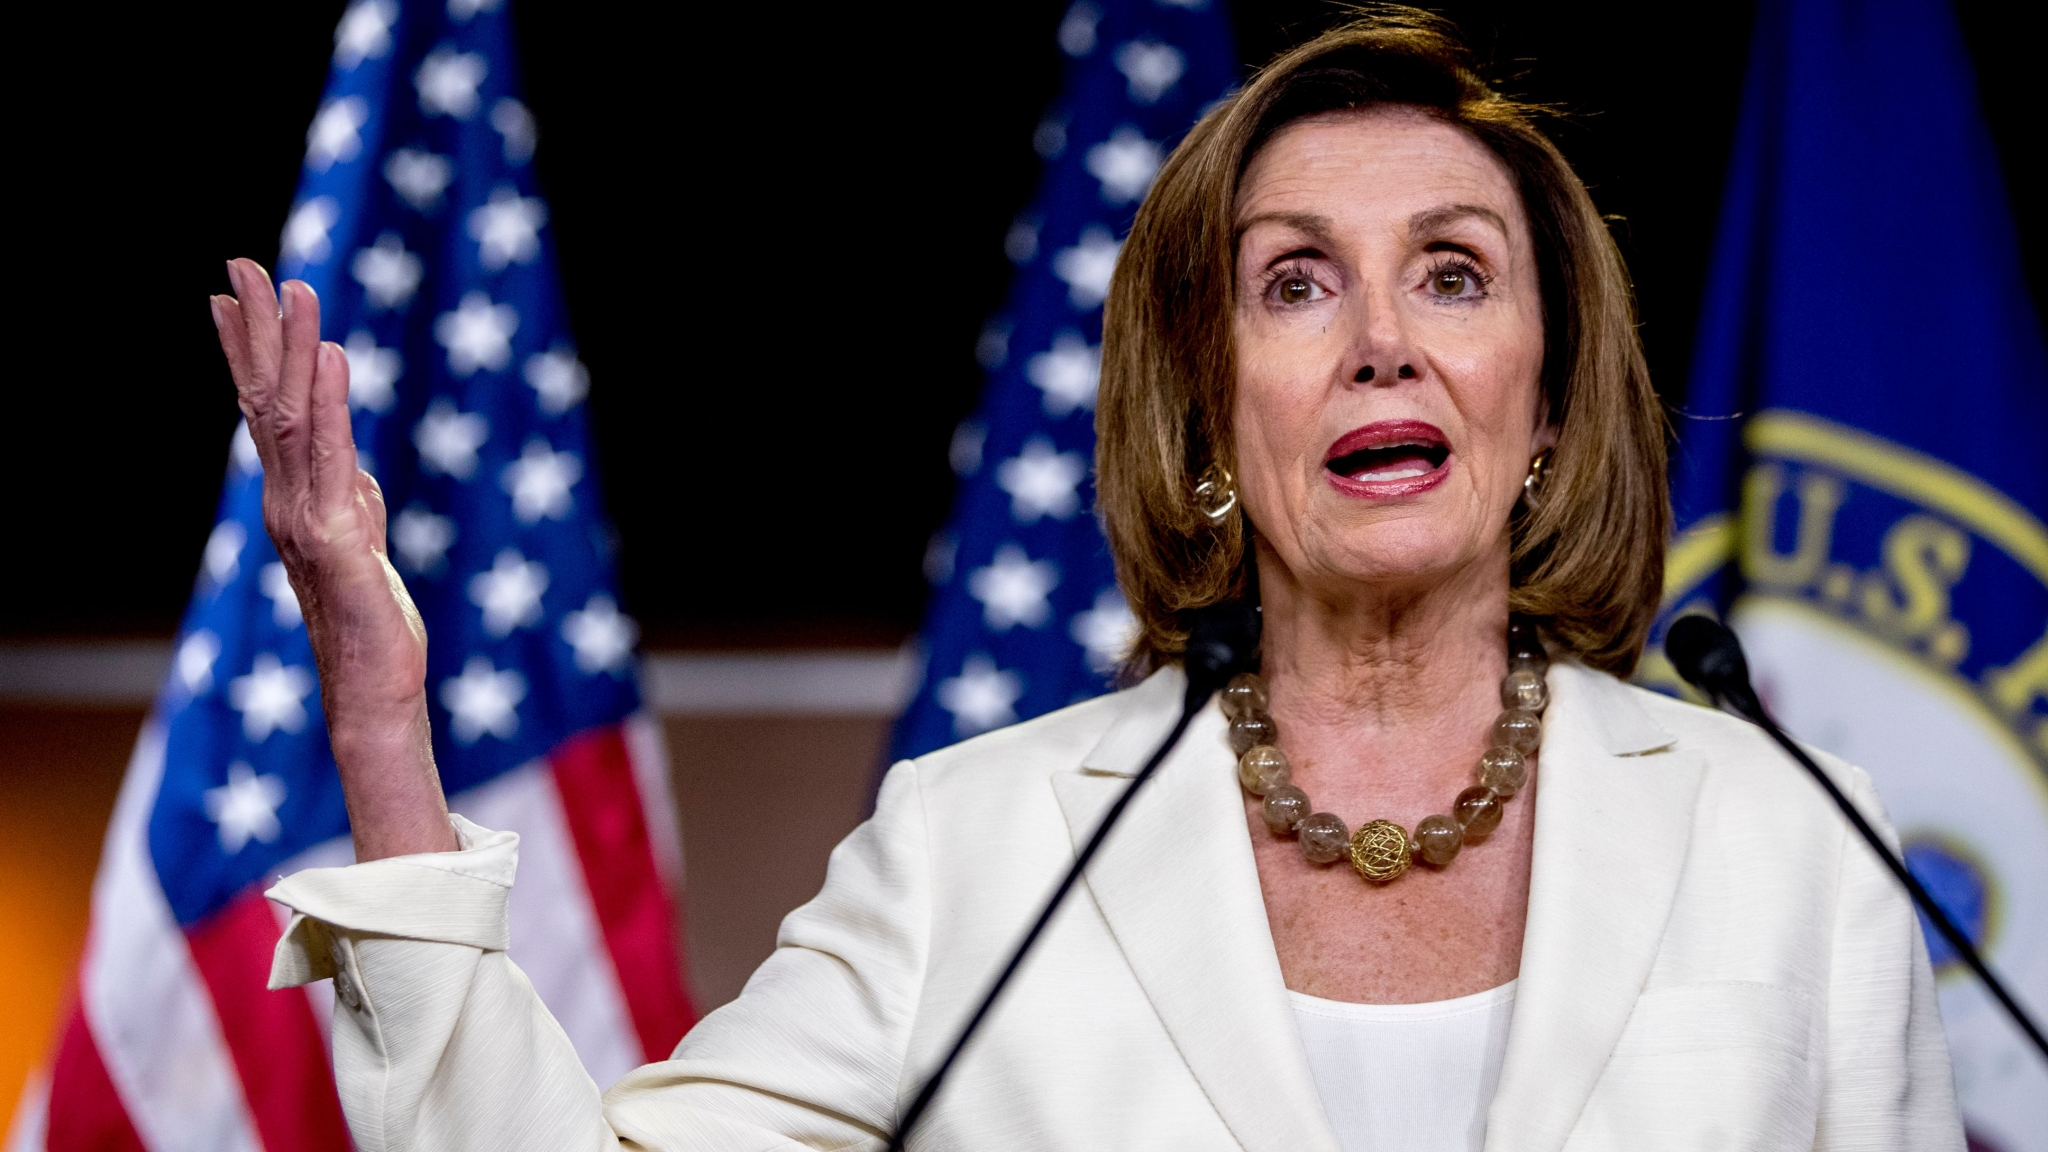 Mahatma Gandhi's 'Satyagraha' Valuable to US: Nancy Pelosi